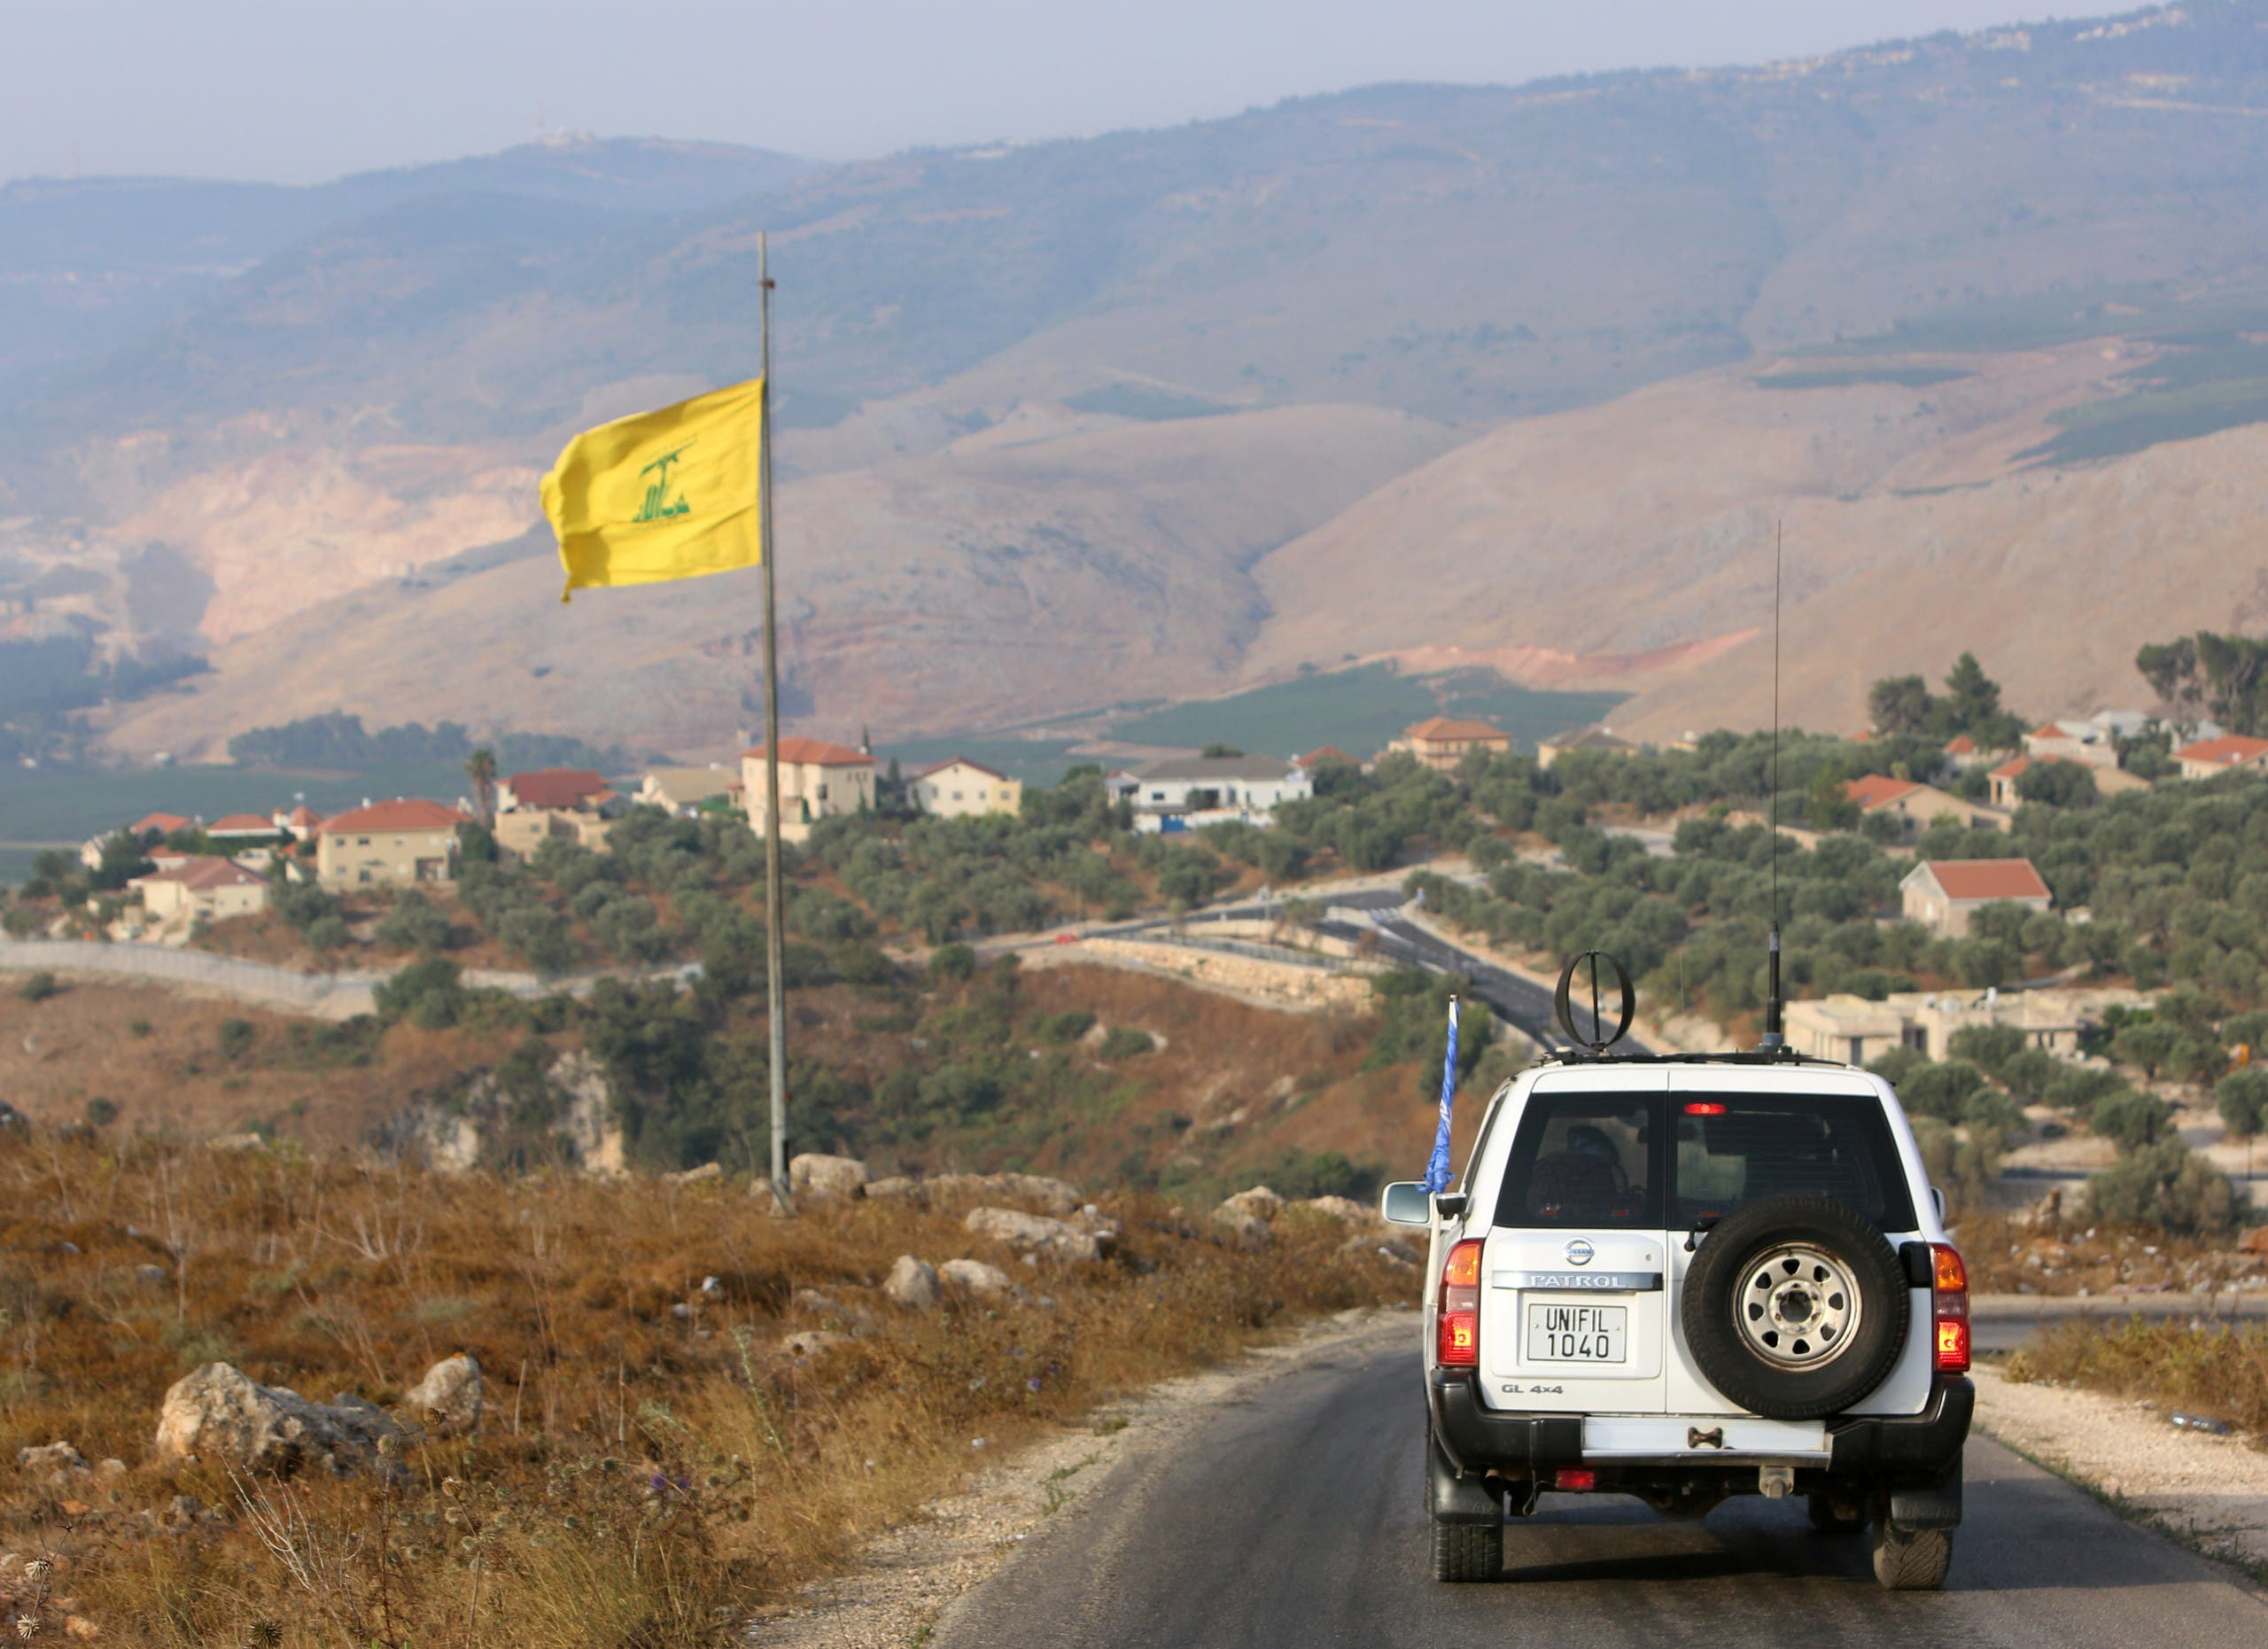 A UN peacekeepers (UNIFIL) vehicle drives past a Hezbollah flag in the southern Lebanese village of Khiam, near the border with Israel, Lebanon. (File photo: Reuters)